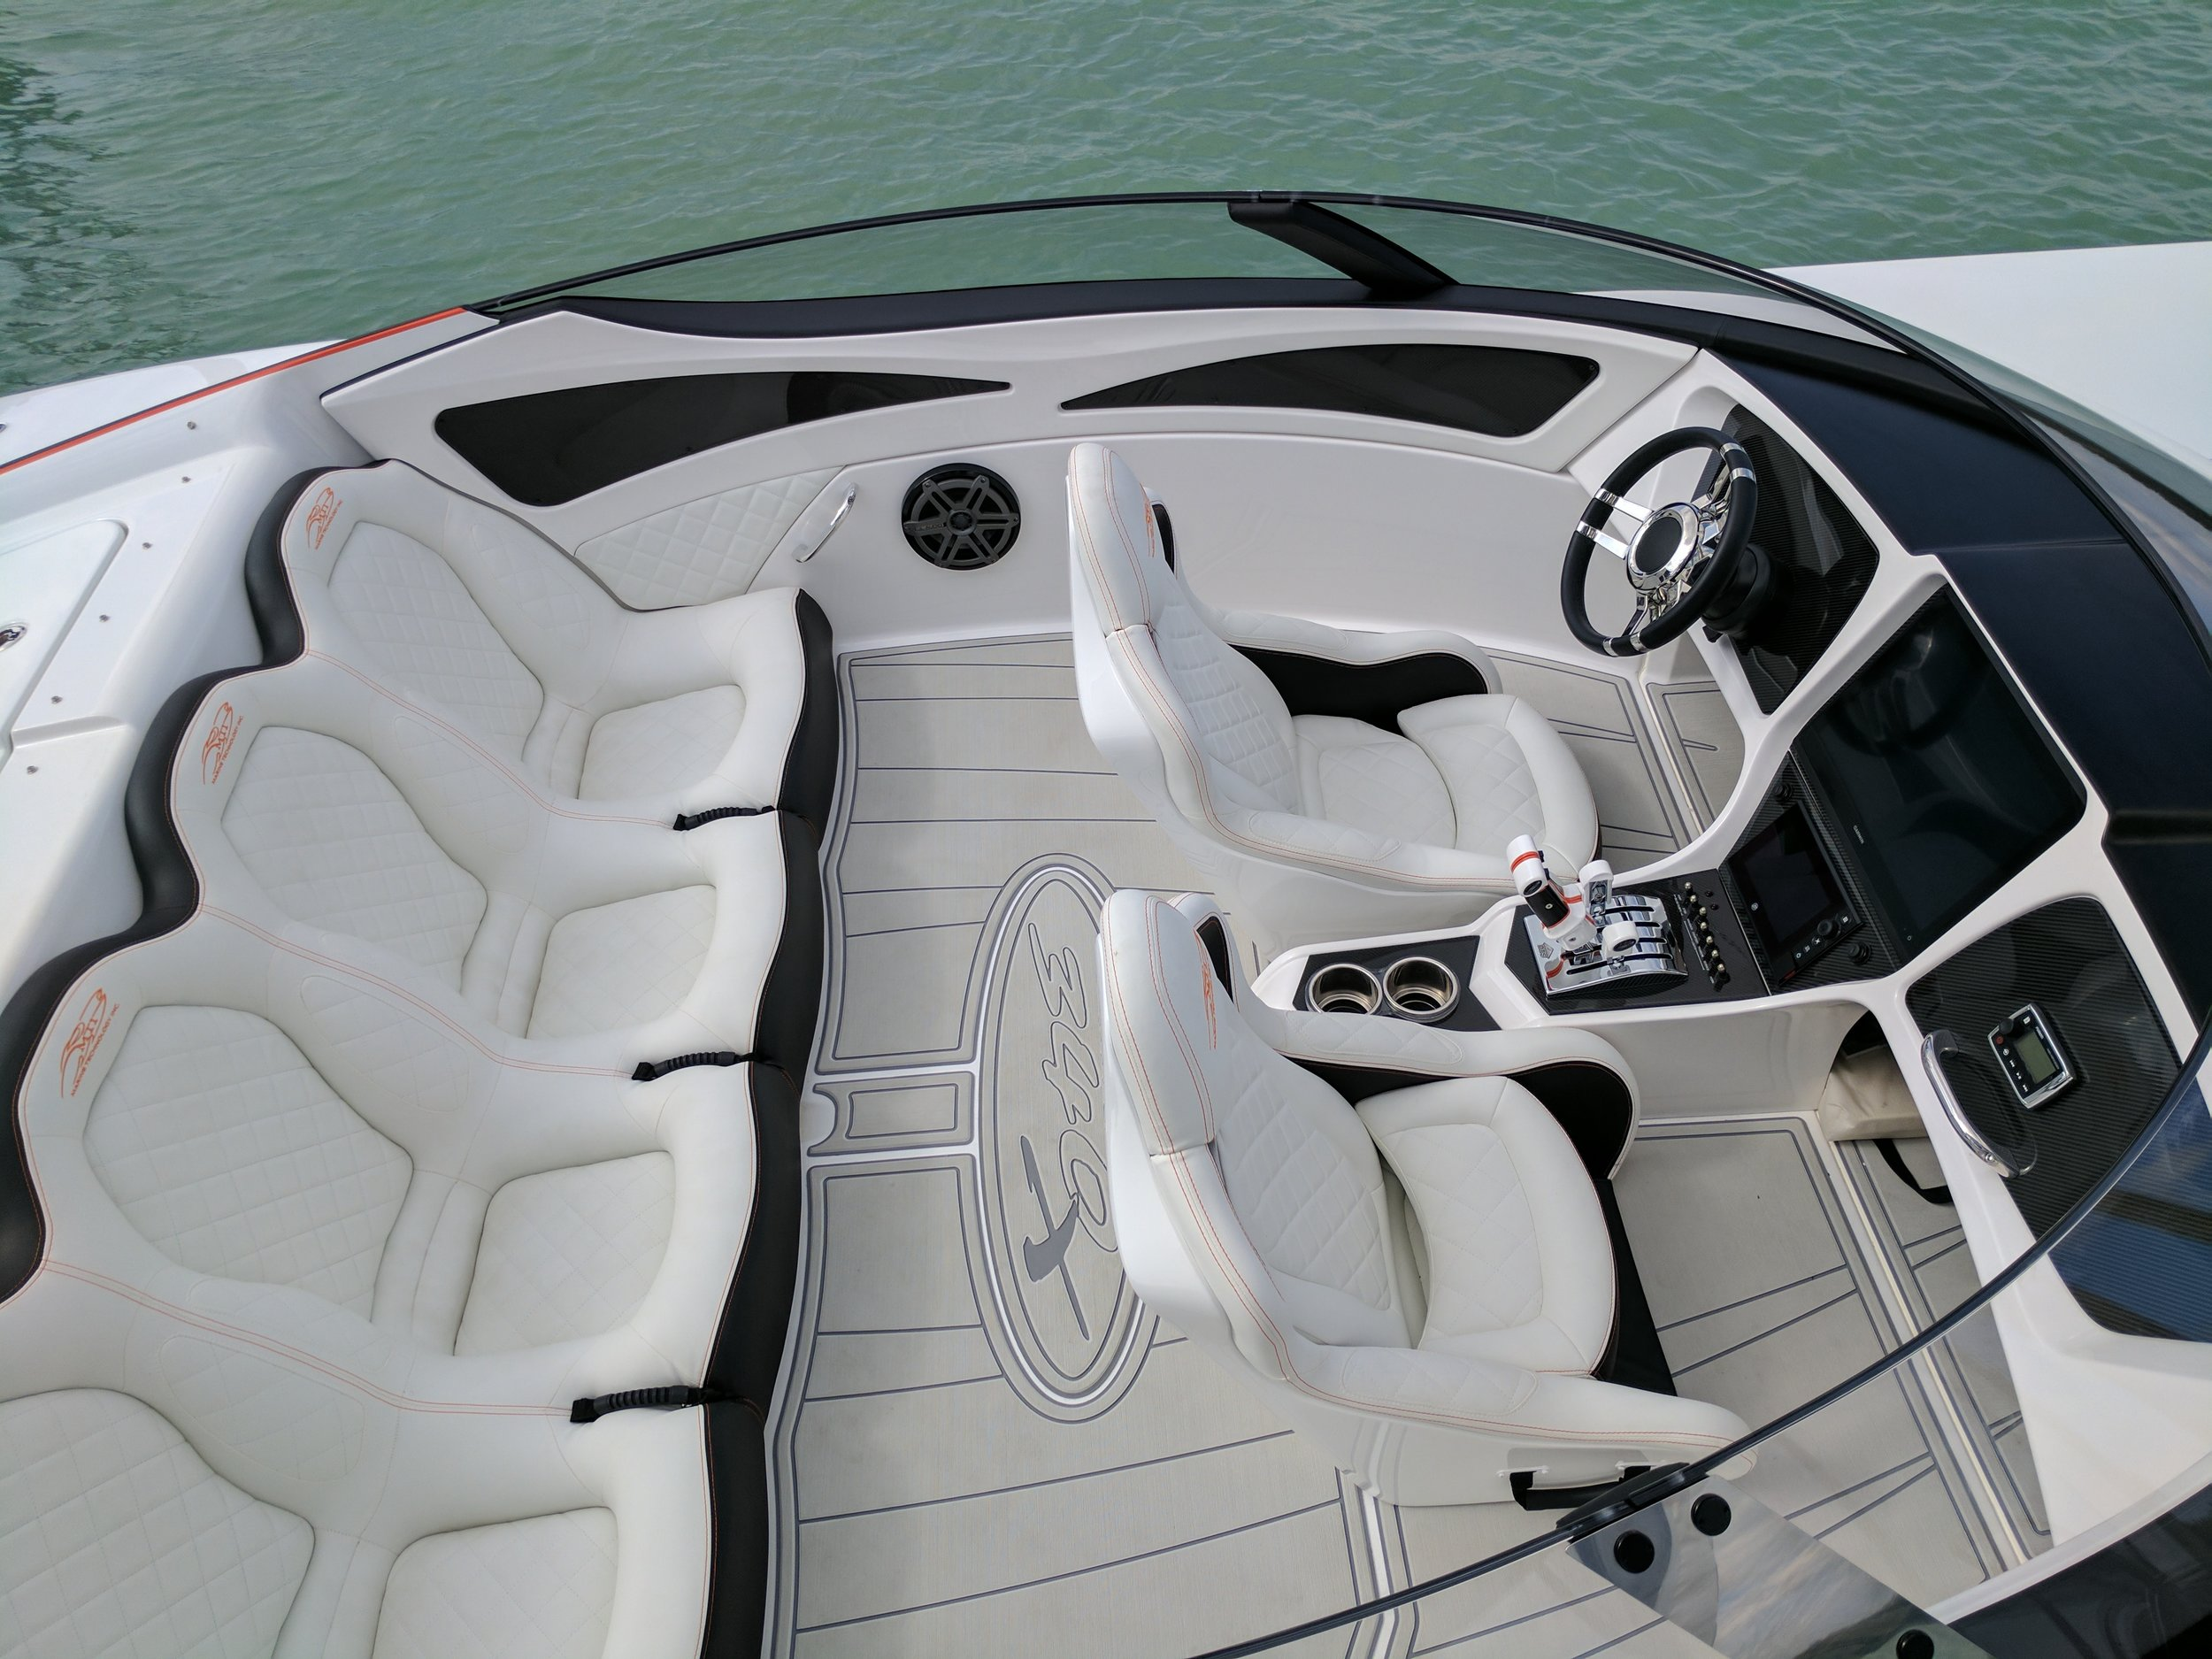 Forward facing seats are not only more comfortable, safer and better ergonomically, they are the best use of limited space. But in boats, safety should be the fist priority.